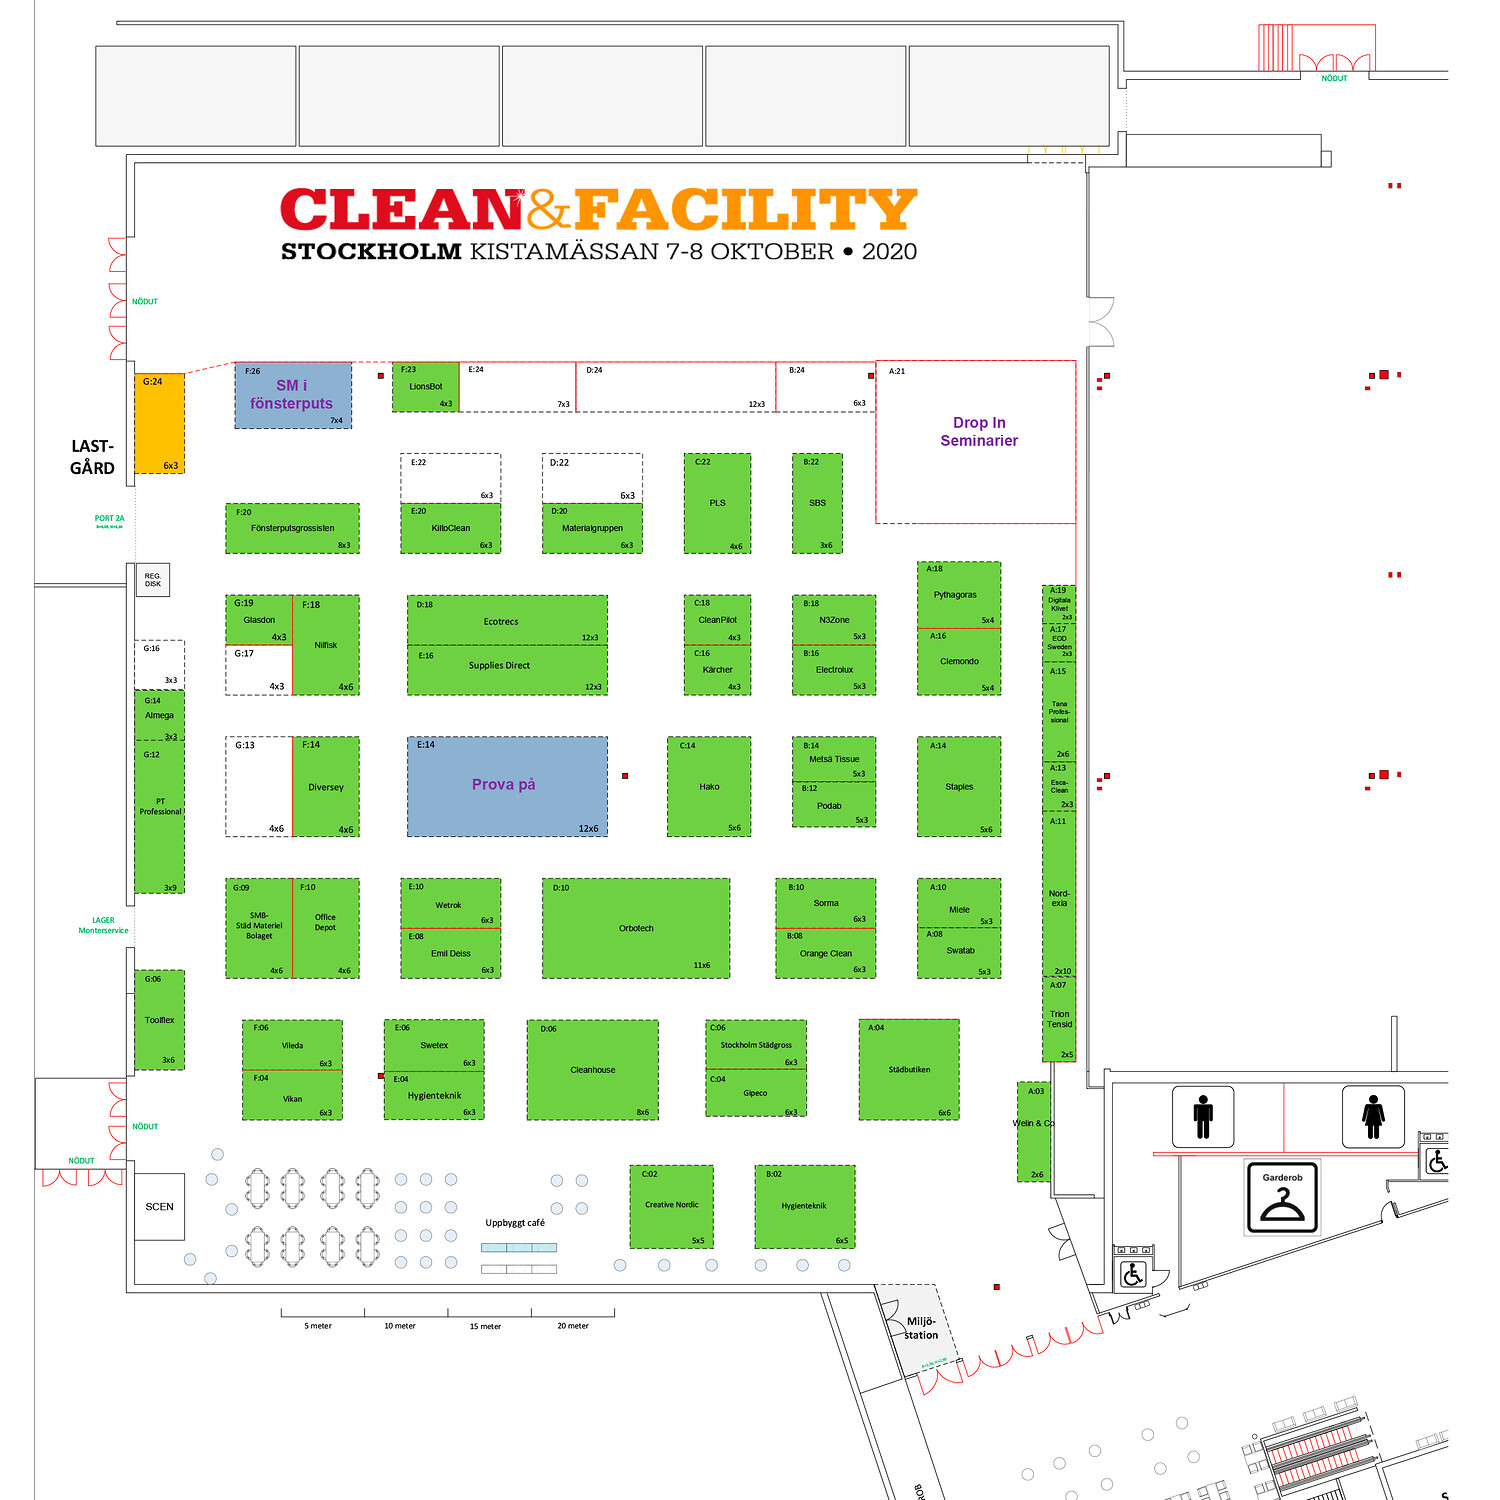 Clean & Facility 2021 hall overview